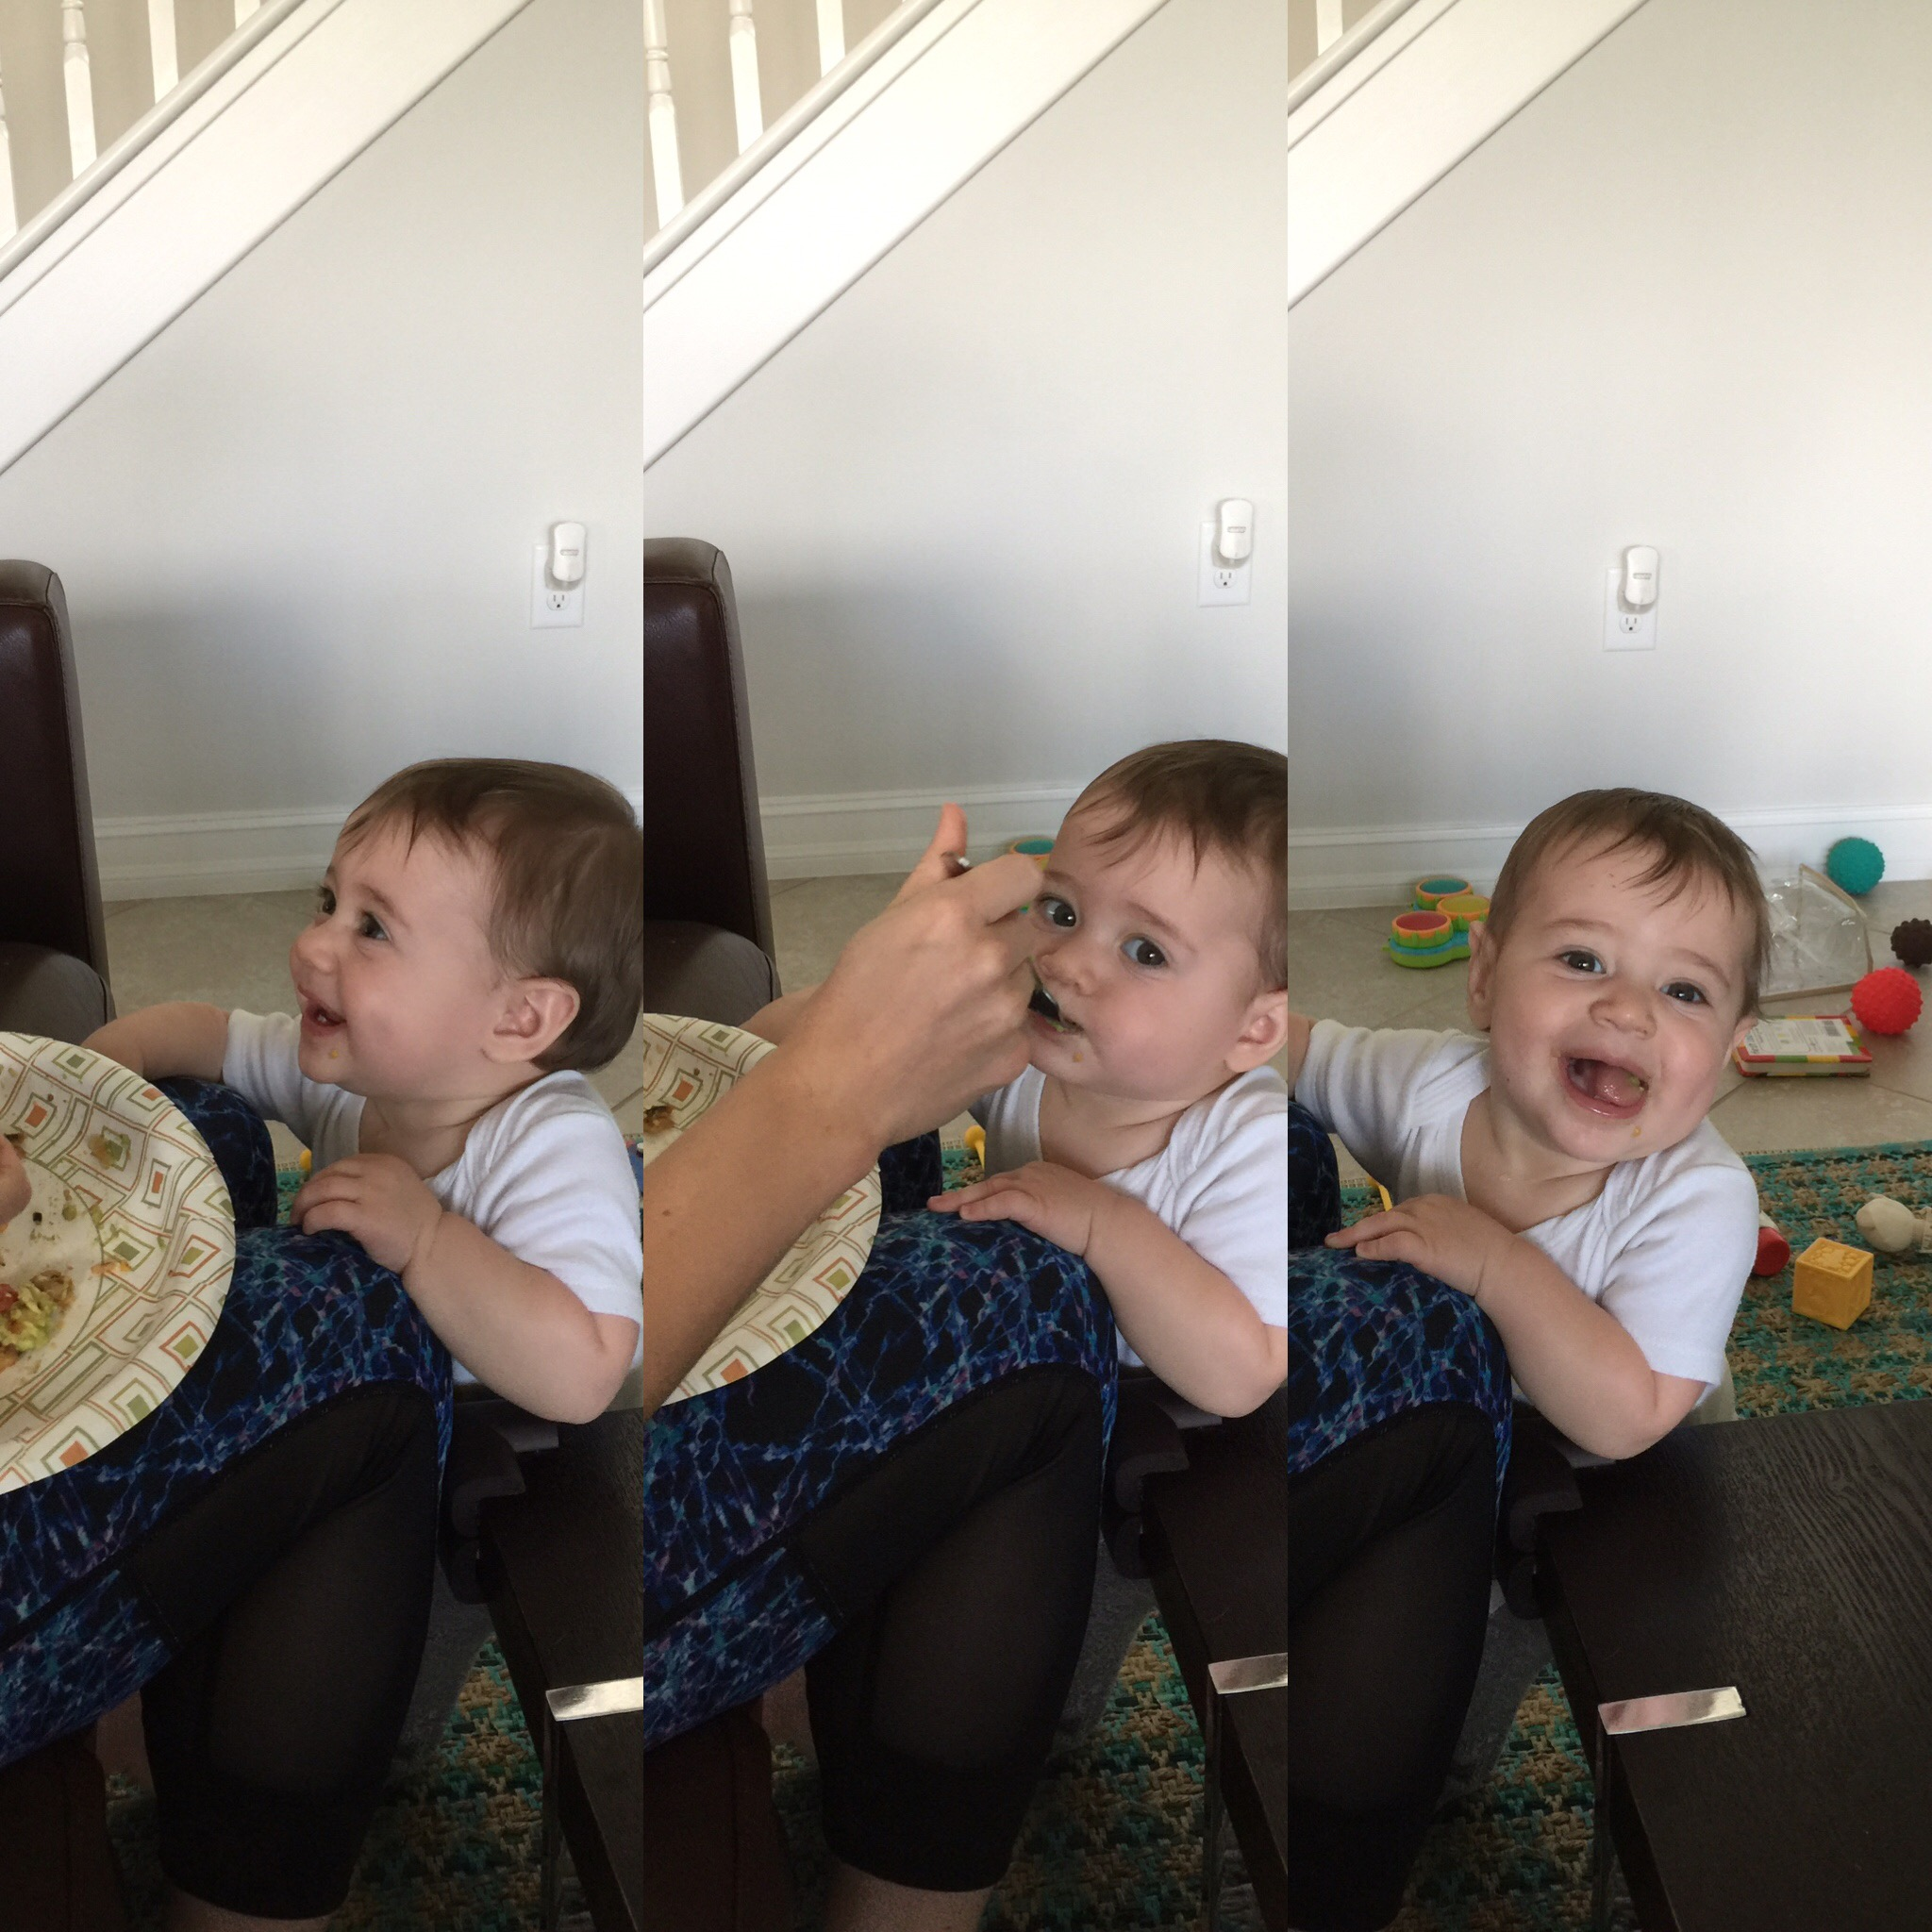 One of my favorite moments from the past month. She was hungry so she decided to share my lunch.